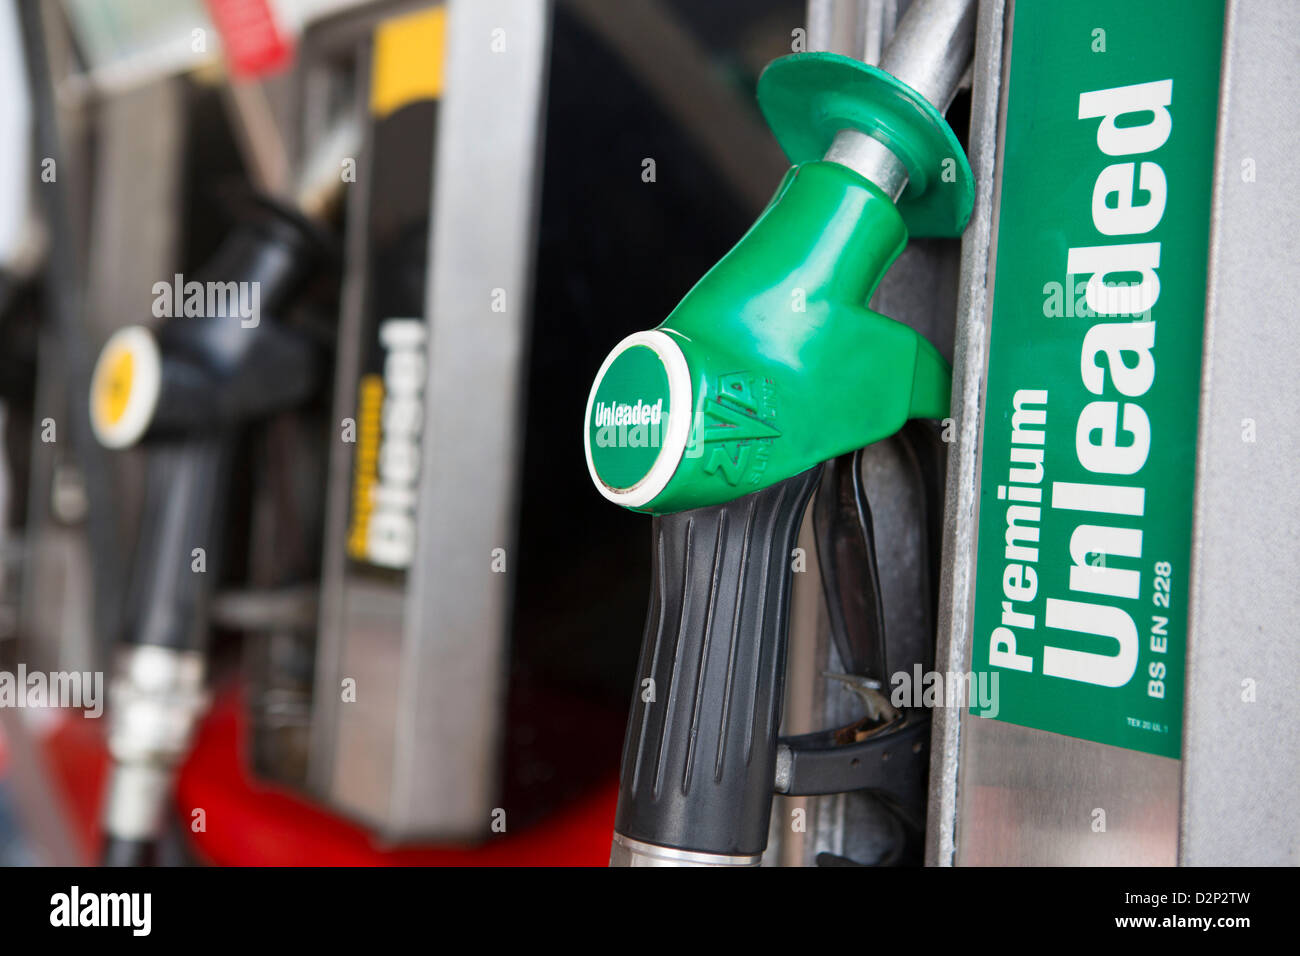 a close up view of a unleaded petrol pump stock photo royalty free image 53345625 alamy. Black Bedroom Furniture Sets. Home Design Ideas